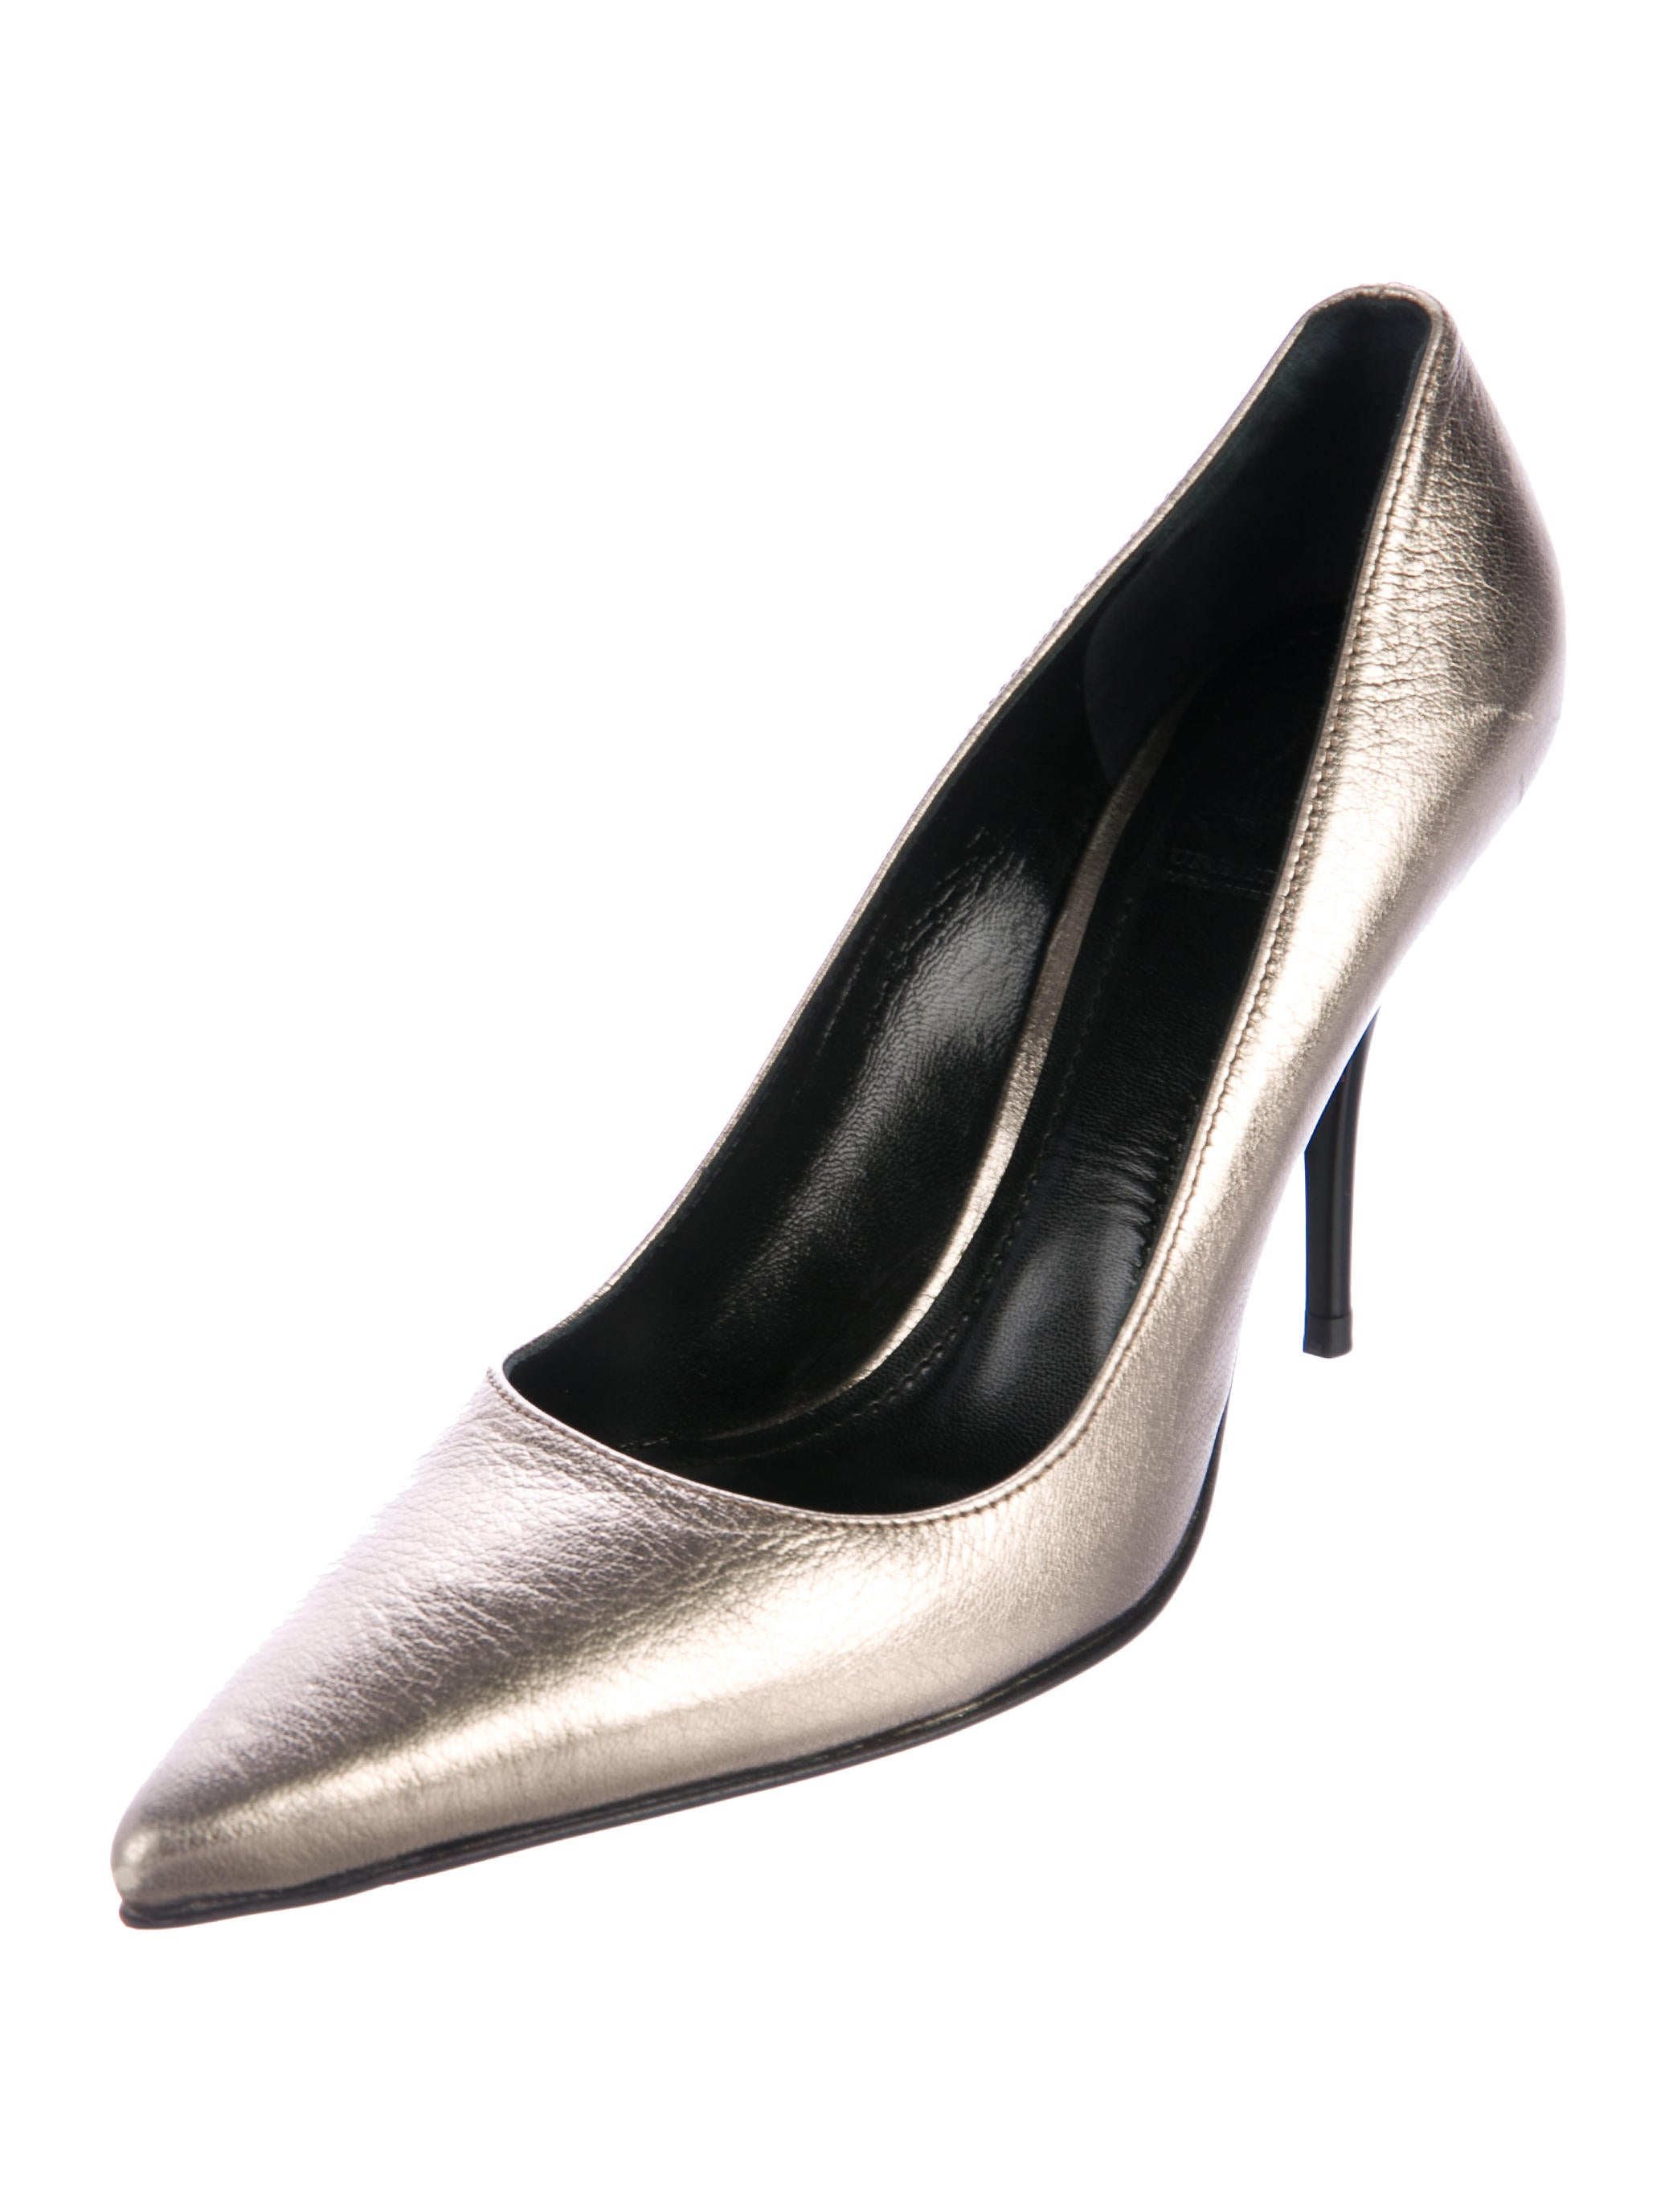 find great cheap online outlet from china Burberry Metallic Pointed-Toe Pumps DHx19